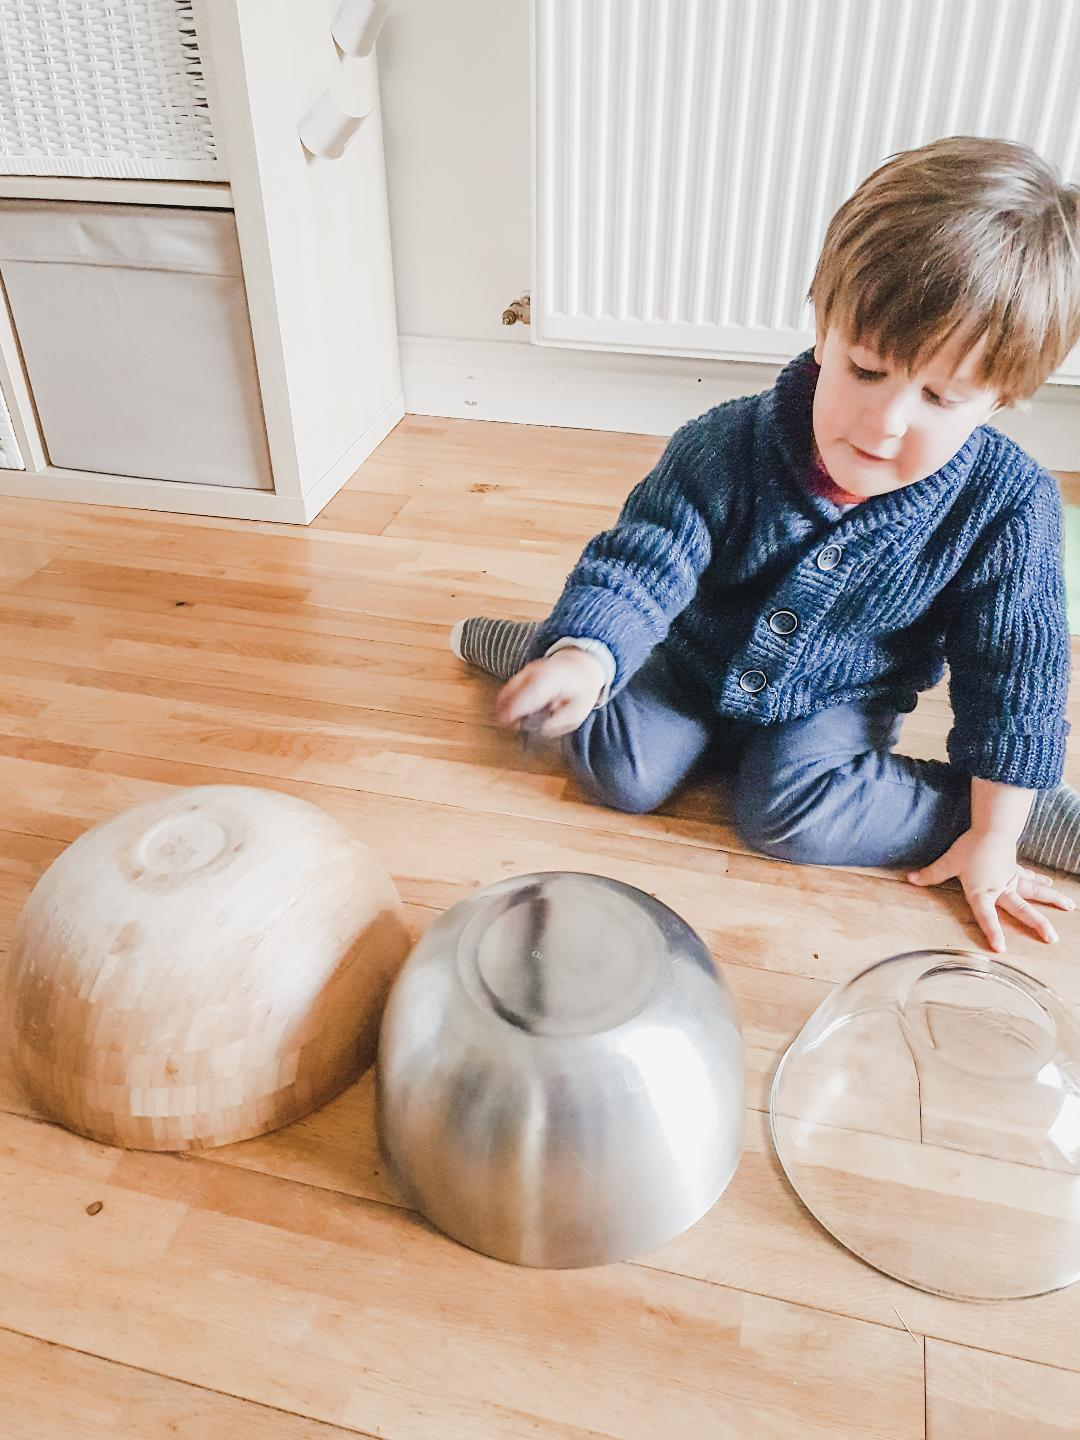 Auditory processing Play ideas for babies and toddlers